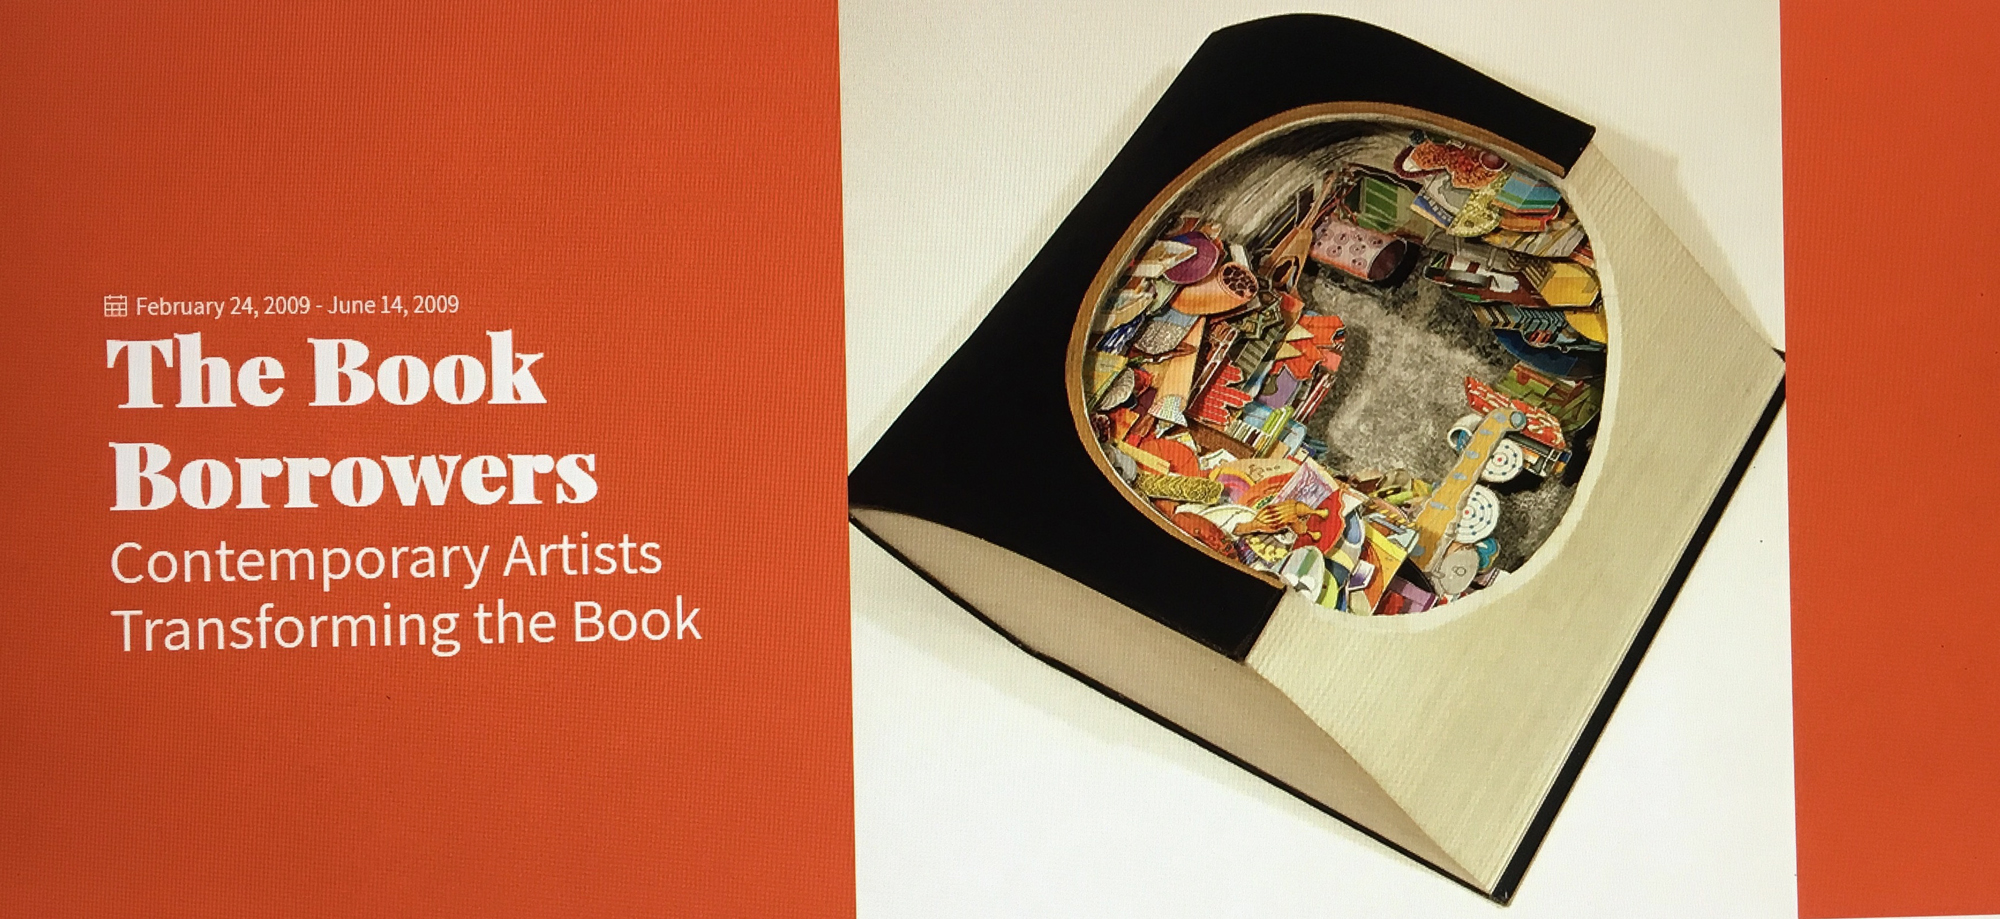 https://www.bellevuearts.org/exhibitions/past/the-book-borrowers